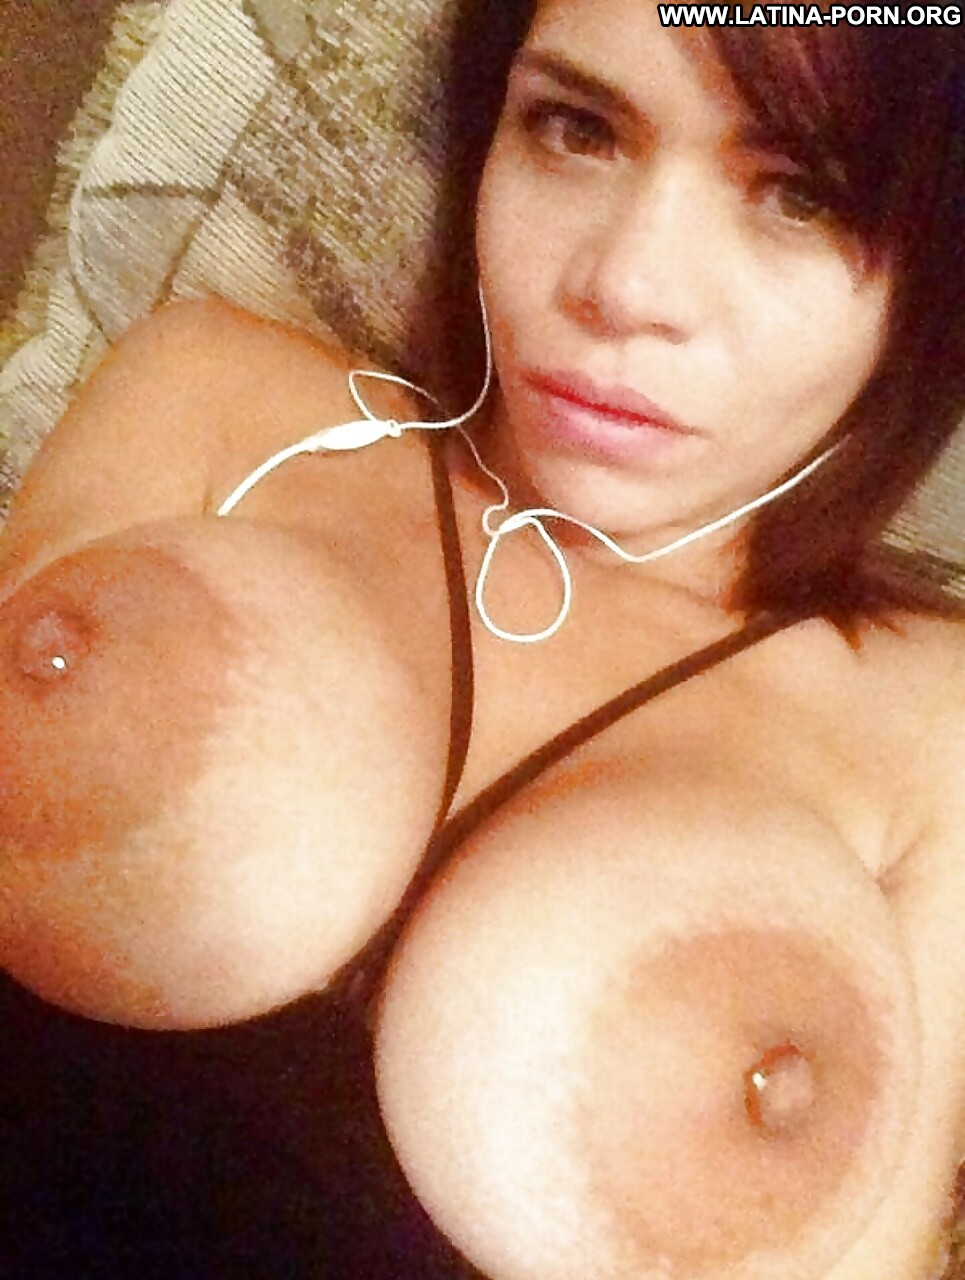 Tiny tits biggest tits of playboy